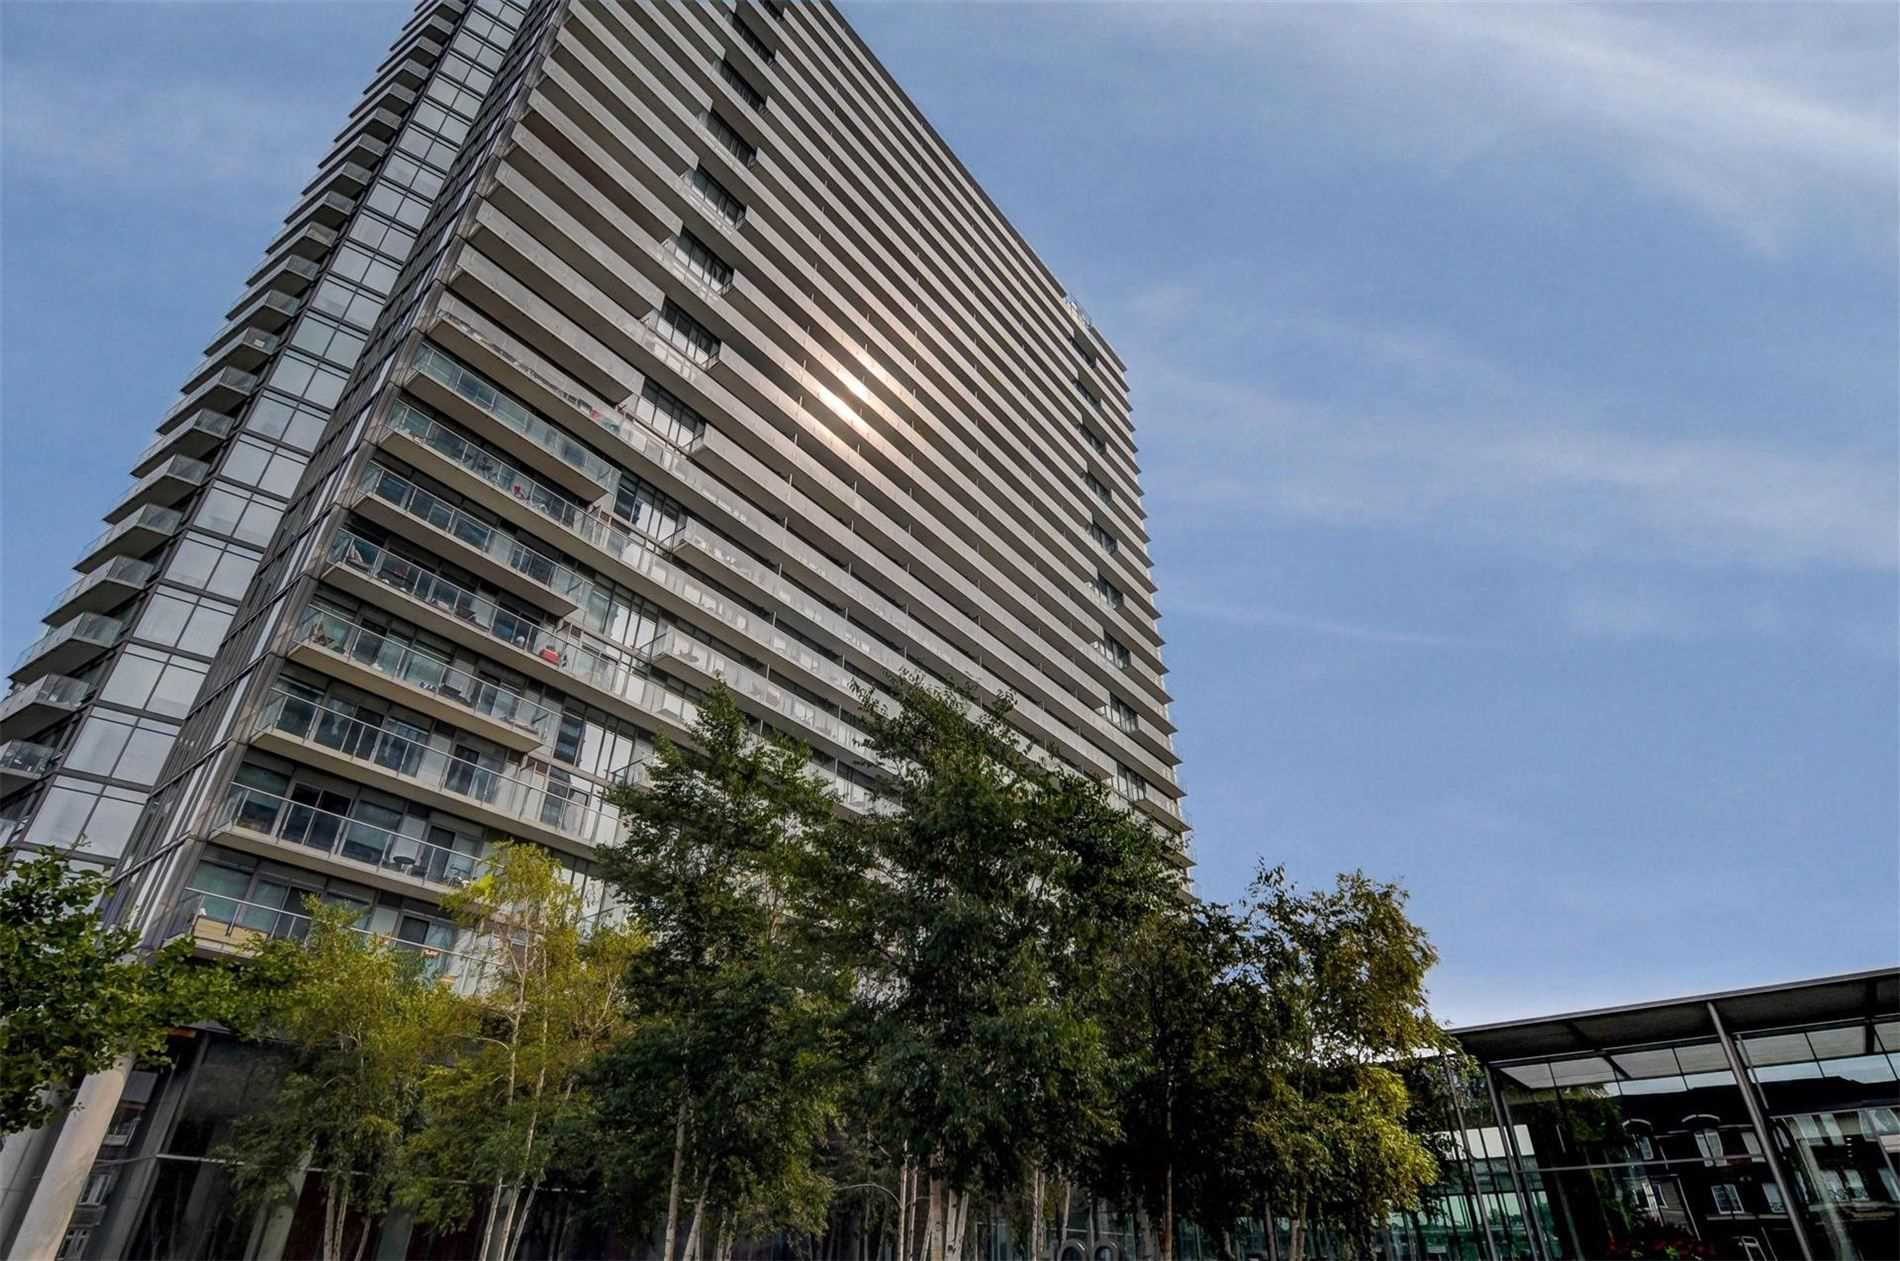 103 The Queensway Ave, Toronto, Ontario M6S 5B3, 1 Bedroom Bedrooms, 4 Rooms Rooms,1 BathroomBathrooms,Condo Apt,For Sale,The Queensway,W4899187